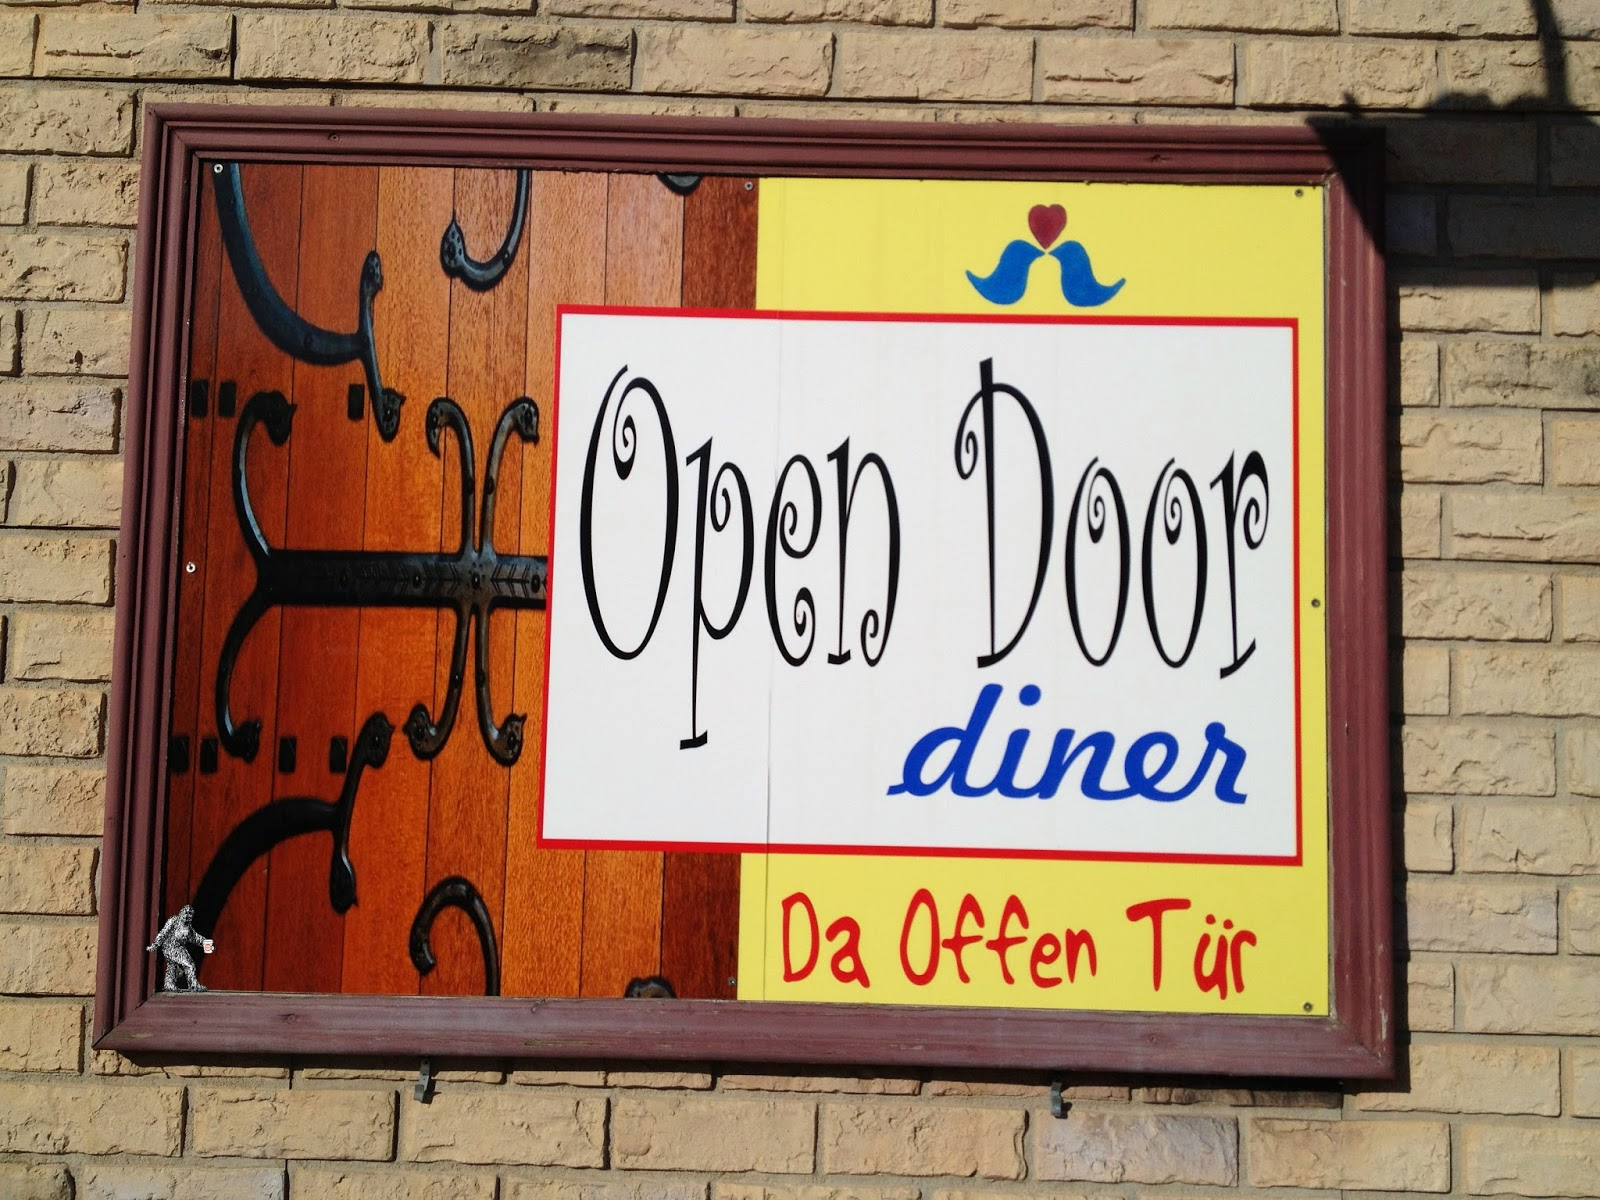 ... heading west from Cincinnati into Illinois consider stopping for a rest in Altamont Illinois. There is a little placed called the Open Door Diner and ... & Madisono\u0027s Gelato: The Open Door Diner in Altamont IL